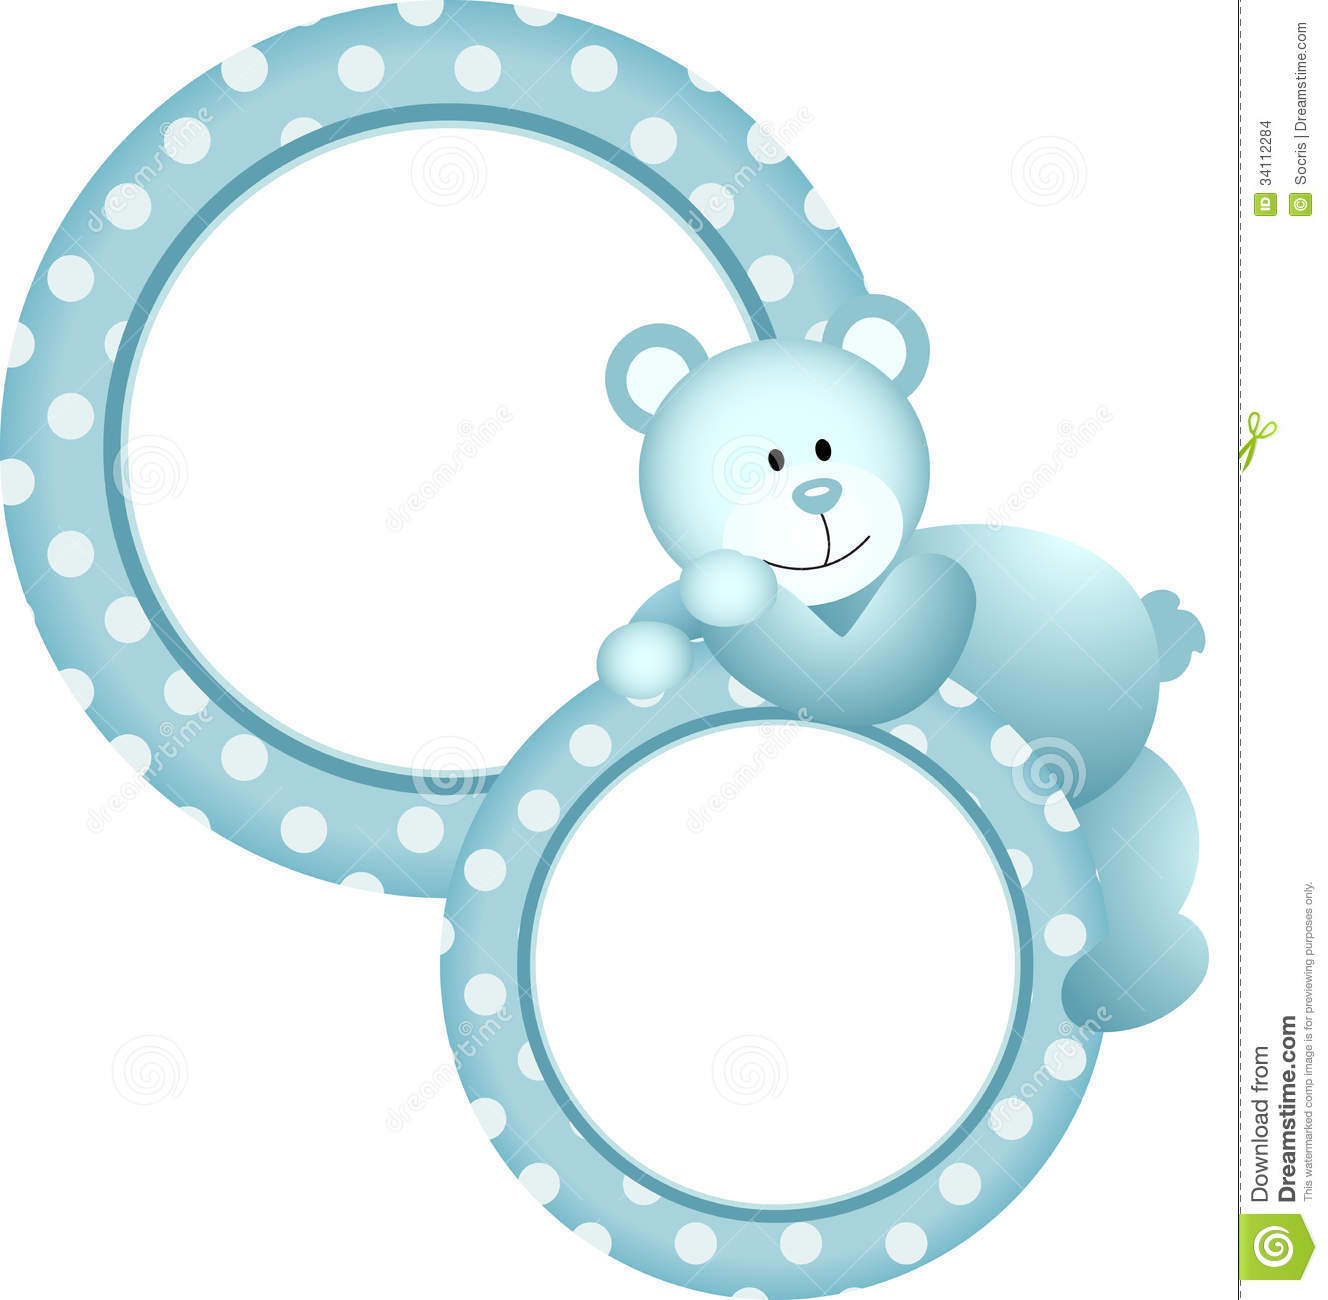 ... representing a baby boy round frame teddy bear, isolated on white